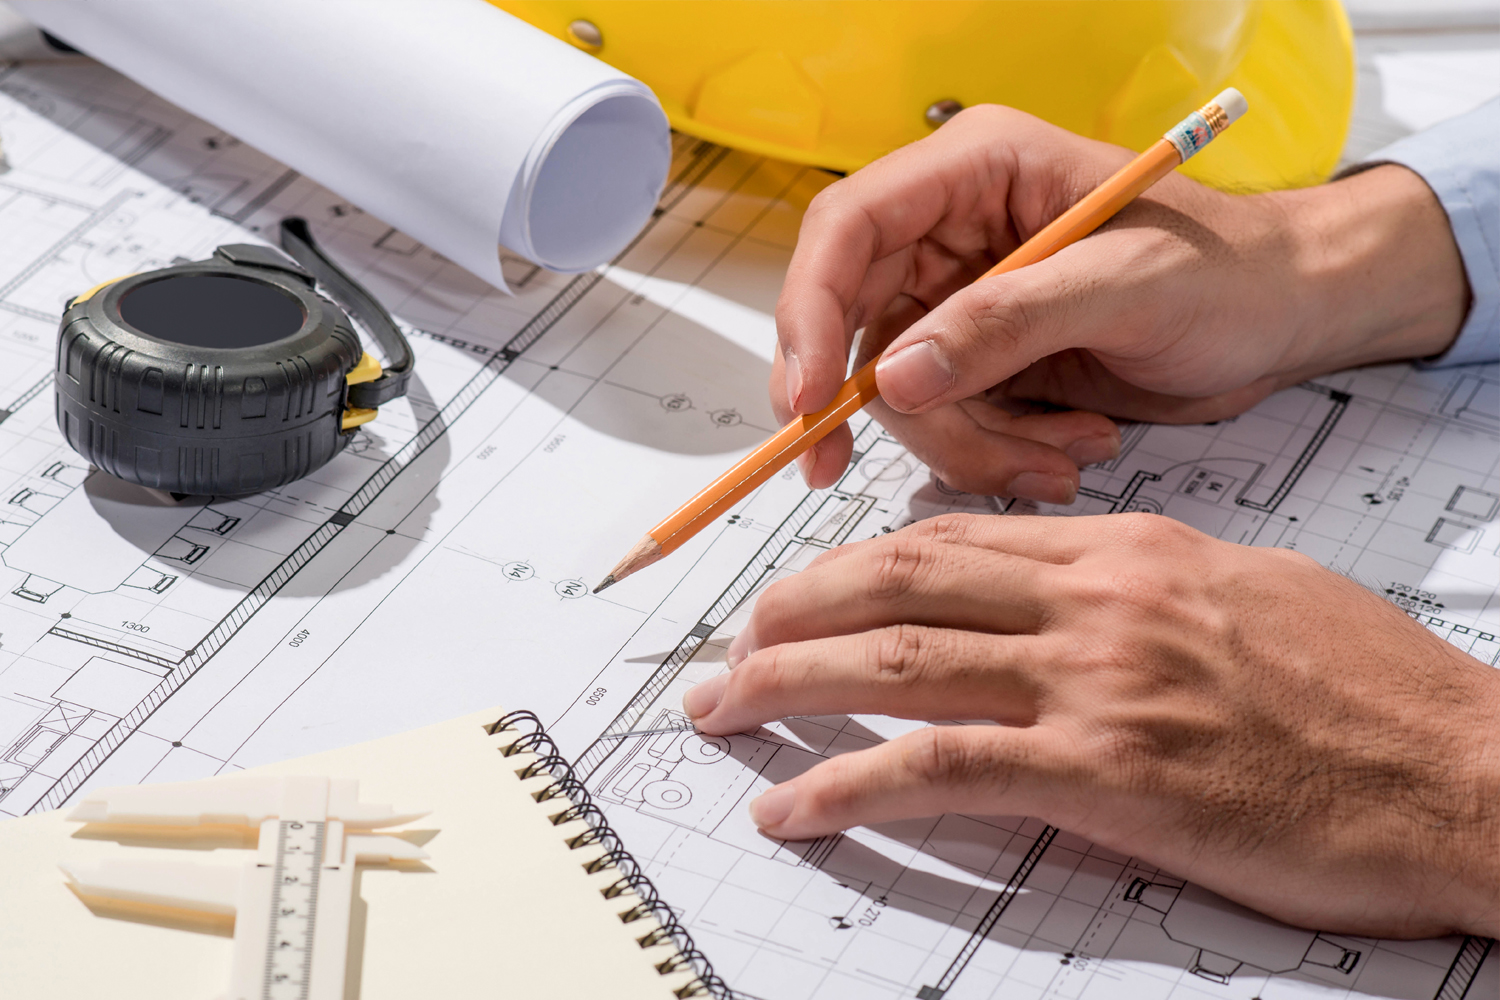 Architectural Design and Engineering Firms 2.jpg